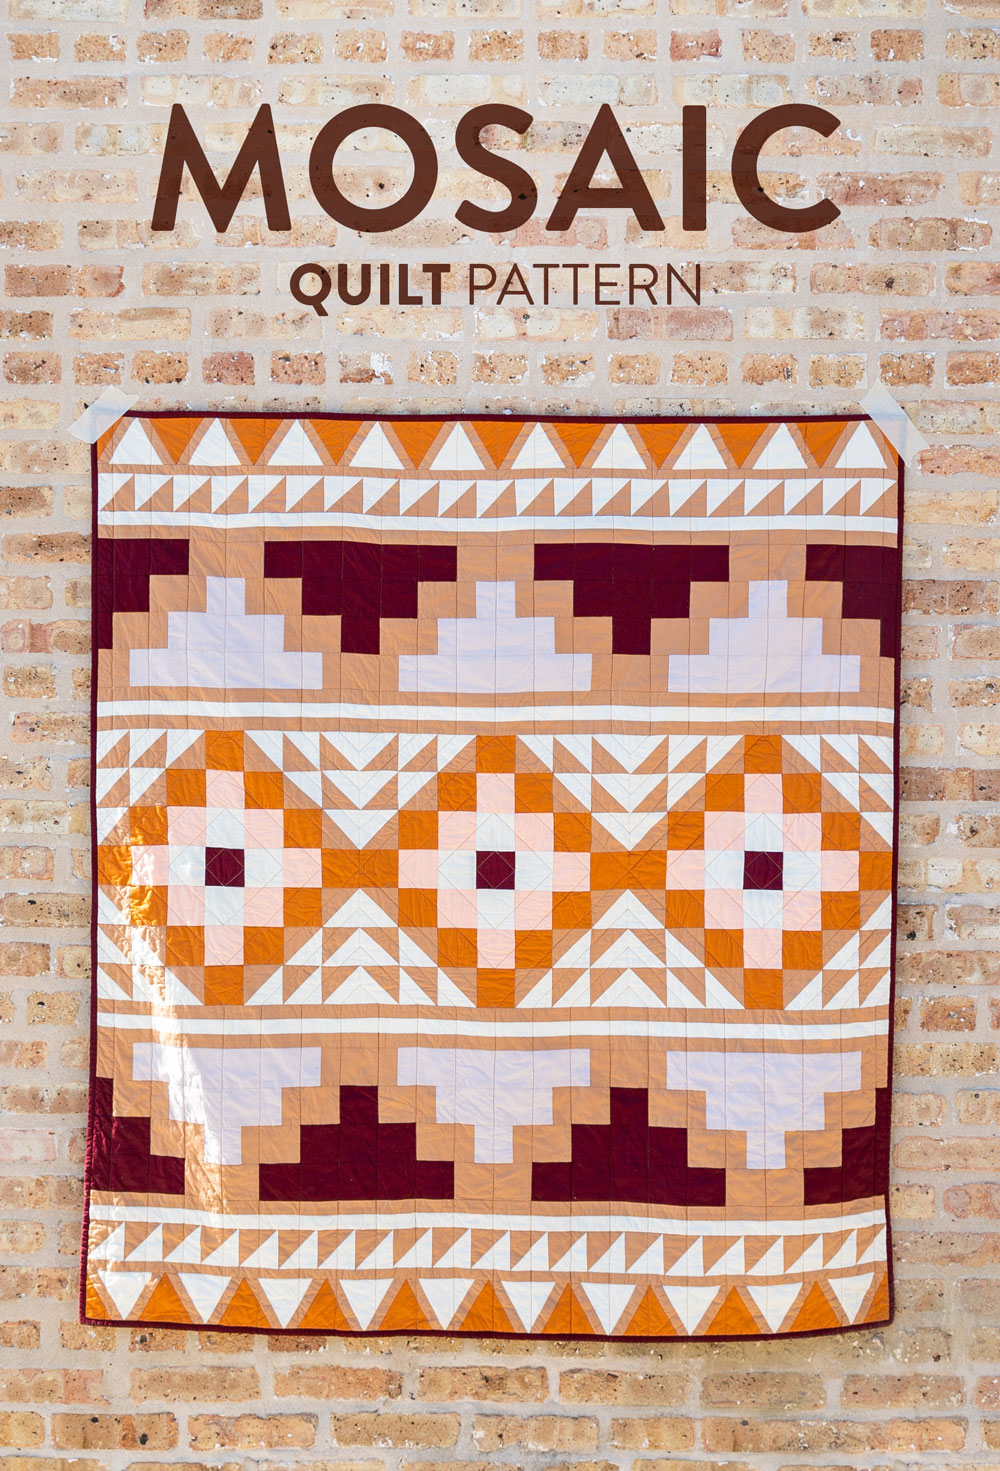 Be inspired by colors of the desert and make your own Mosaic quilt. With warm solid fabrics, this quilt pattern looks modern and timeless! suzyquilts.com #quiltkit #quiltpattern